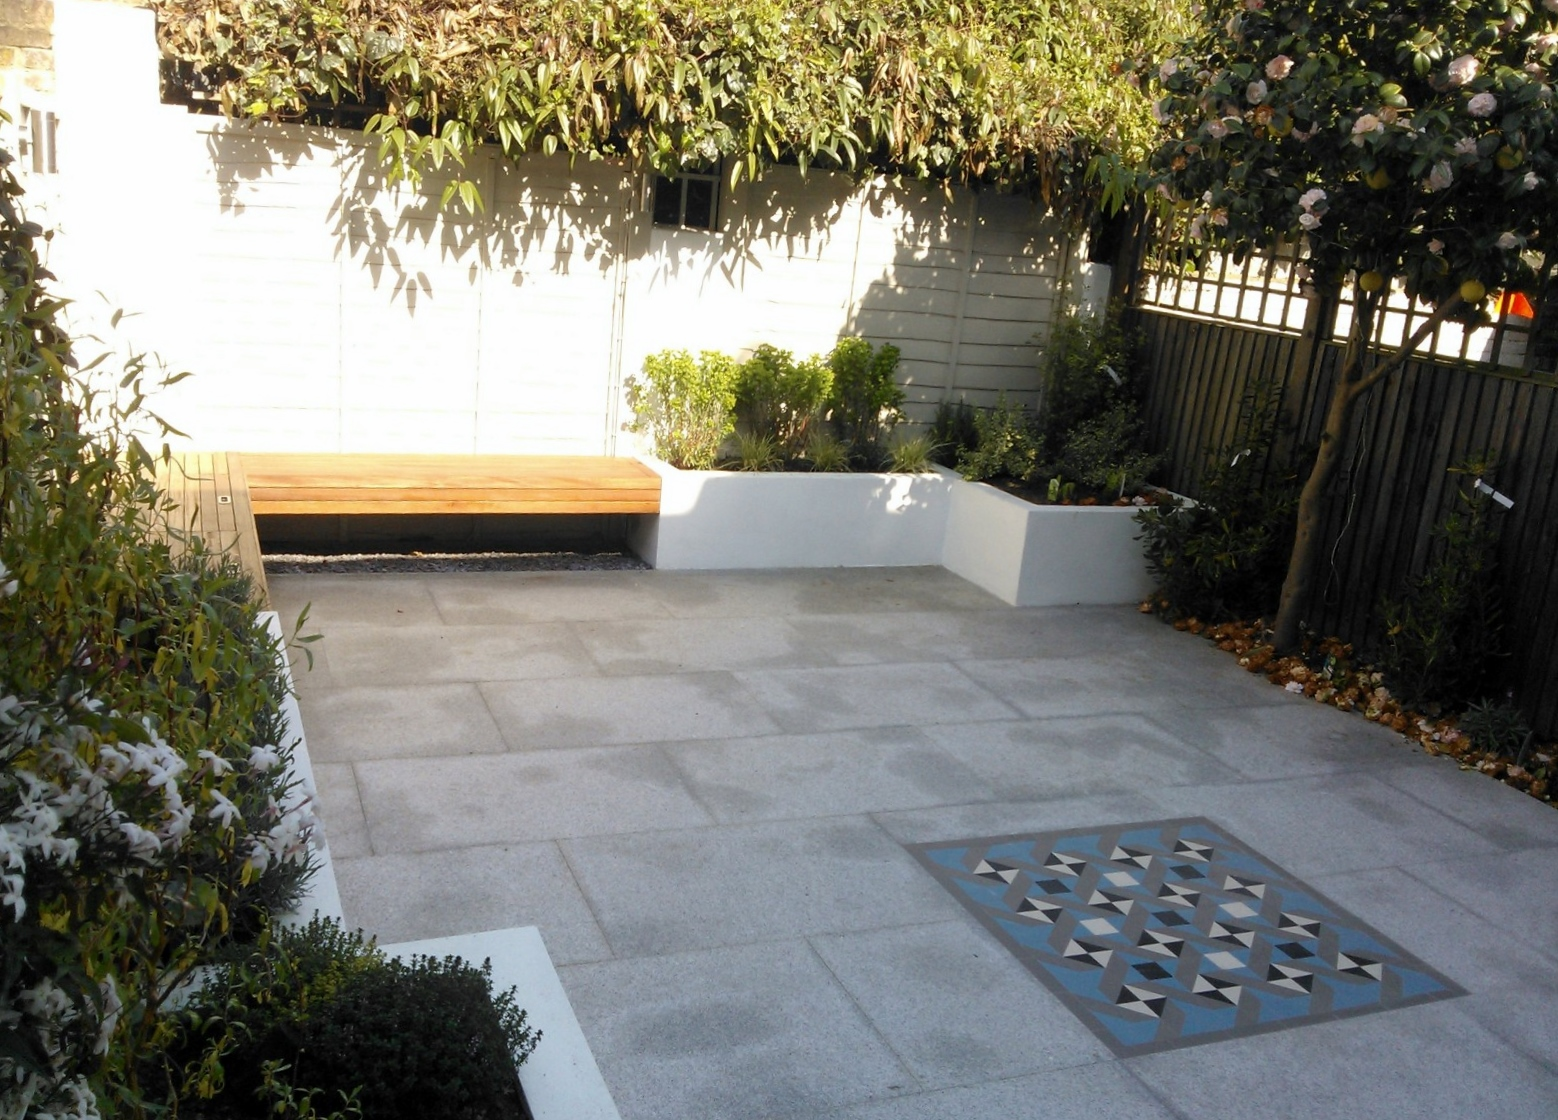 Modern London Garden Design Painted Fence Granite Paving Hardwood Bench Raised Painted beds architectural Planting London